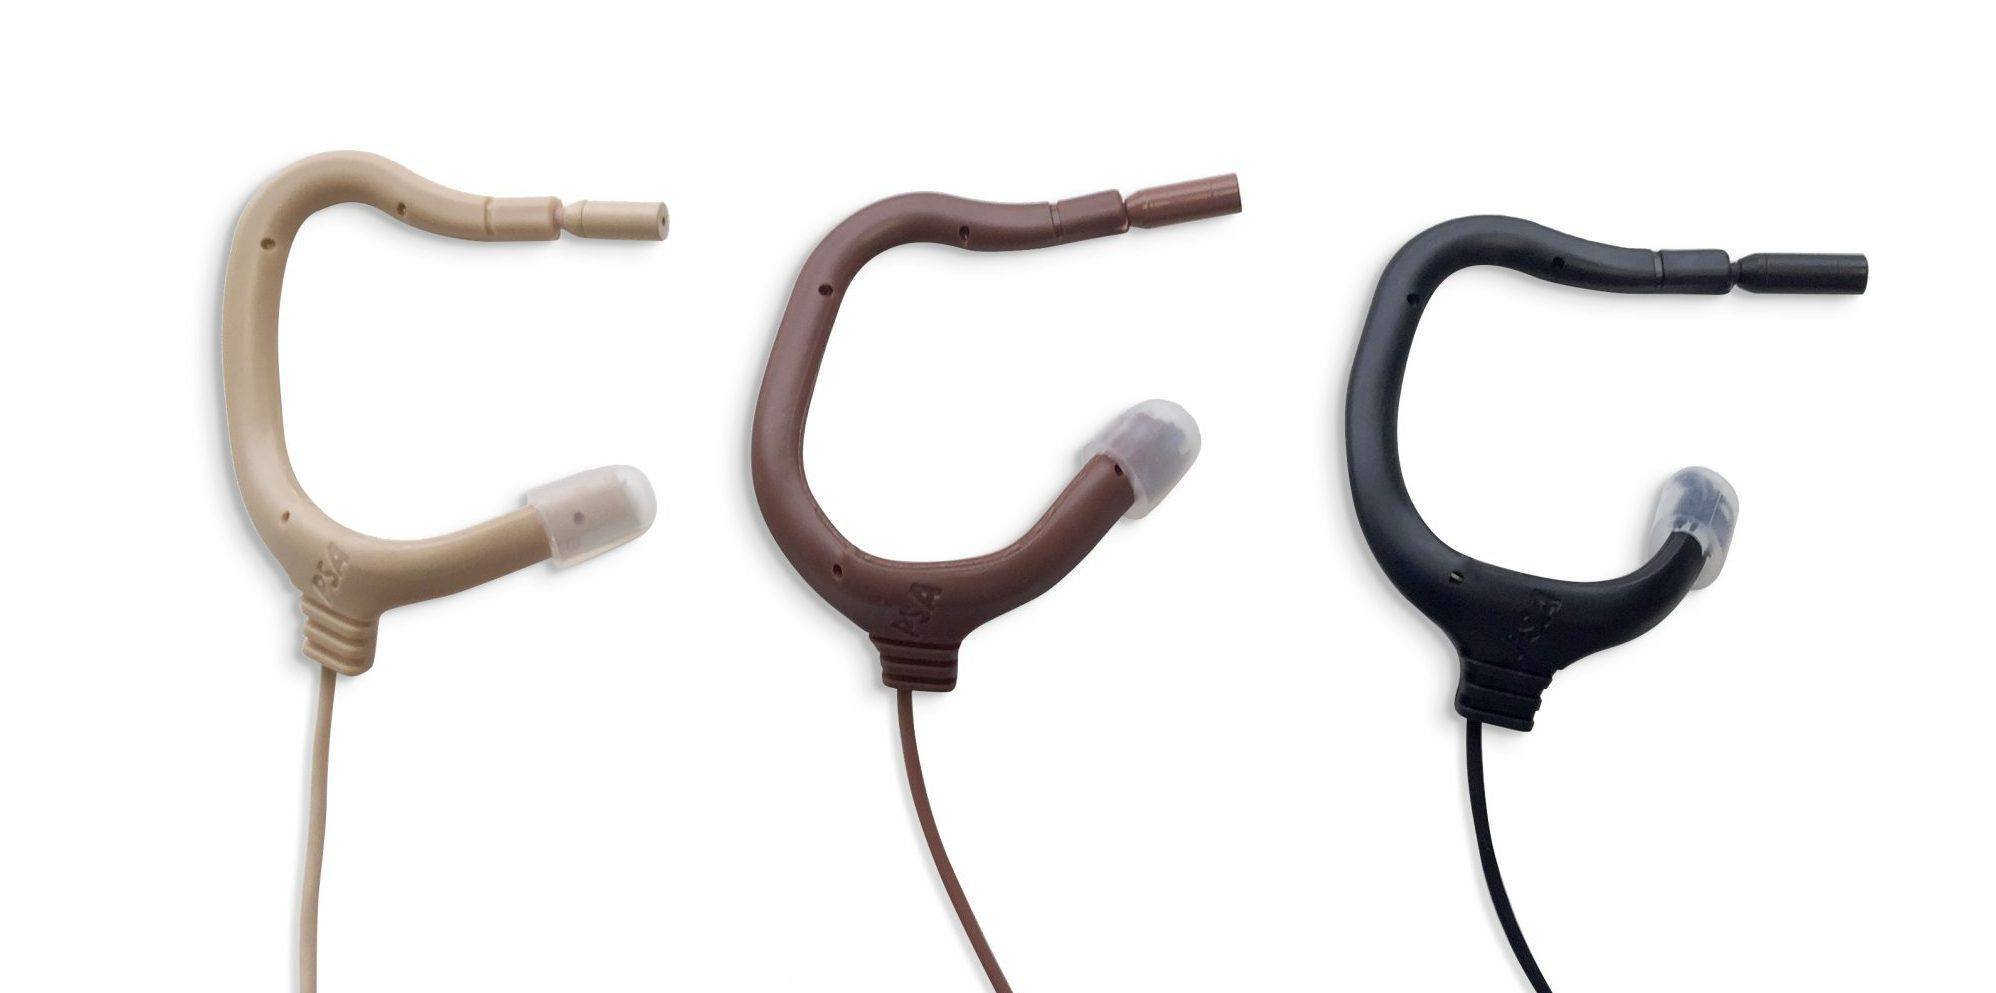 EMBRACE Microphones in 3 Colors